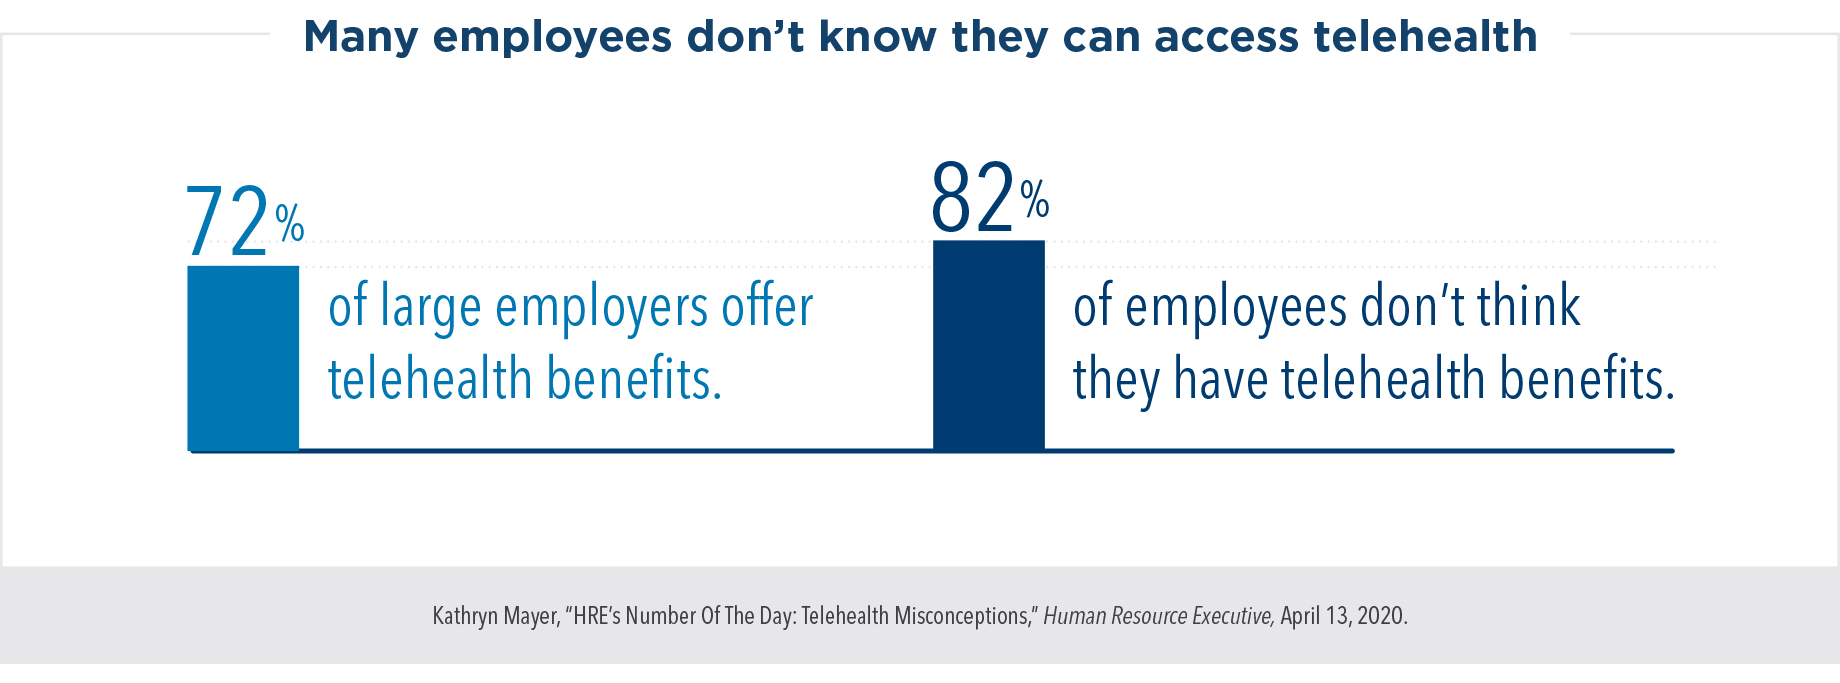 Many employees don't know they can access telehealth. 72% of large employers offer telehealth benefits, but 82% of employees don't think they have telehealth benefits.